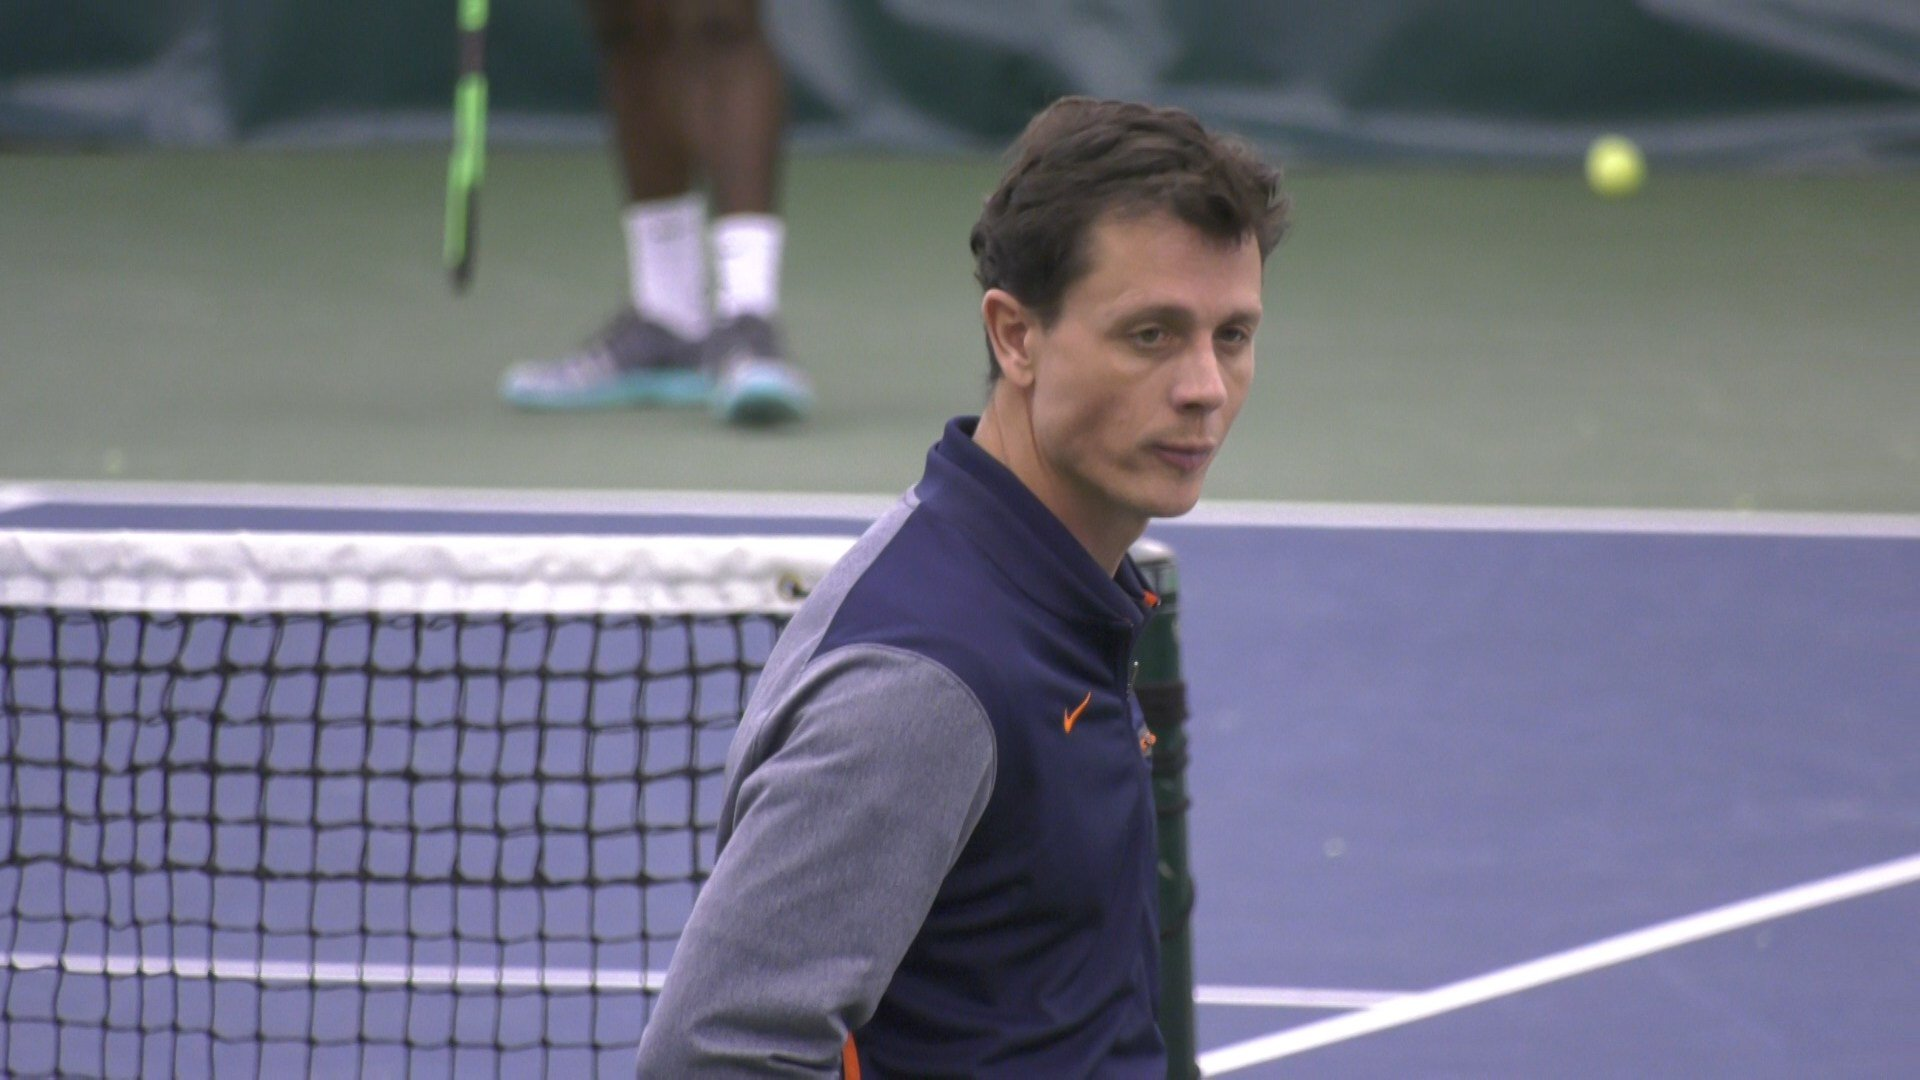 Virginia head coach Andres Pedroso